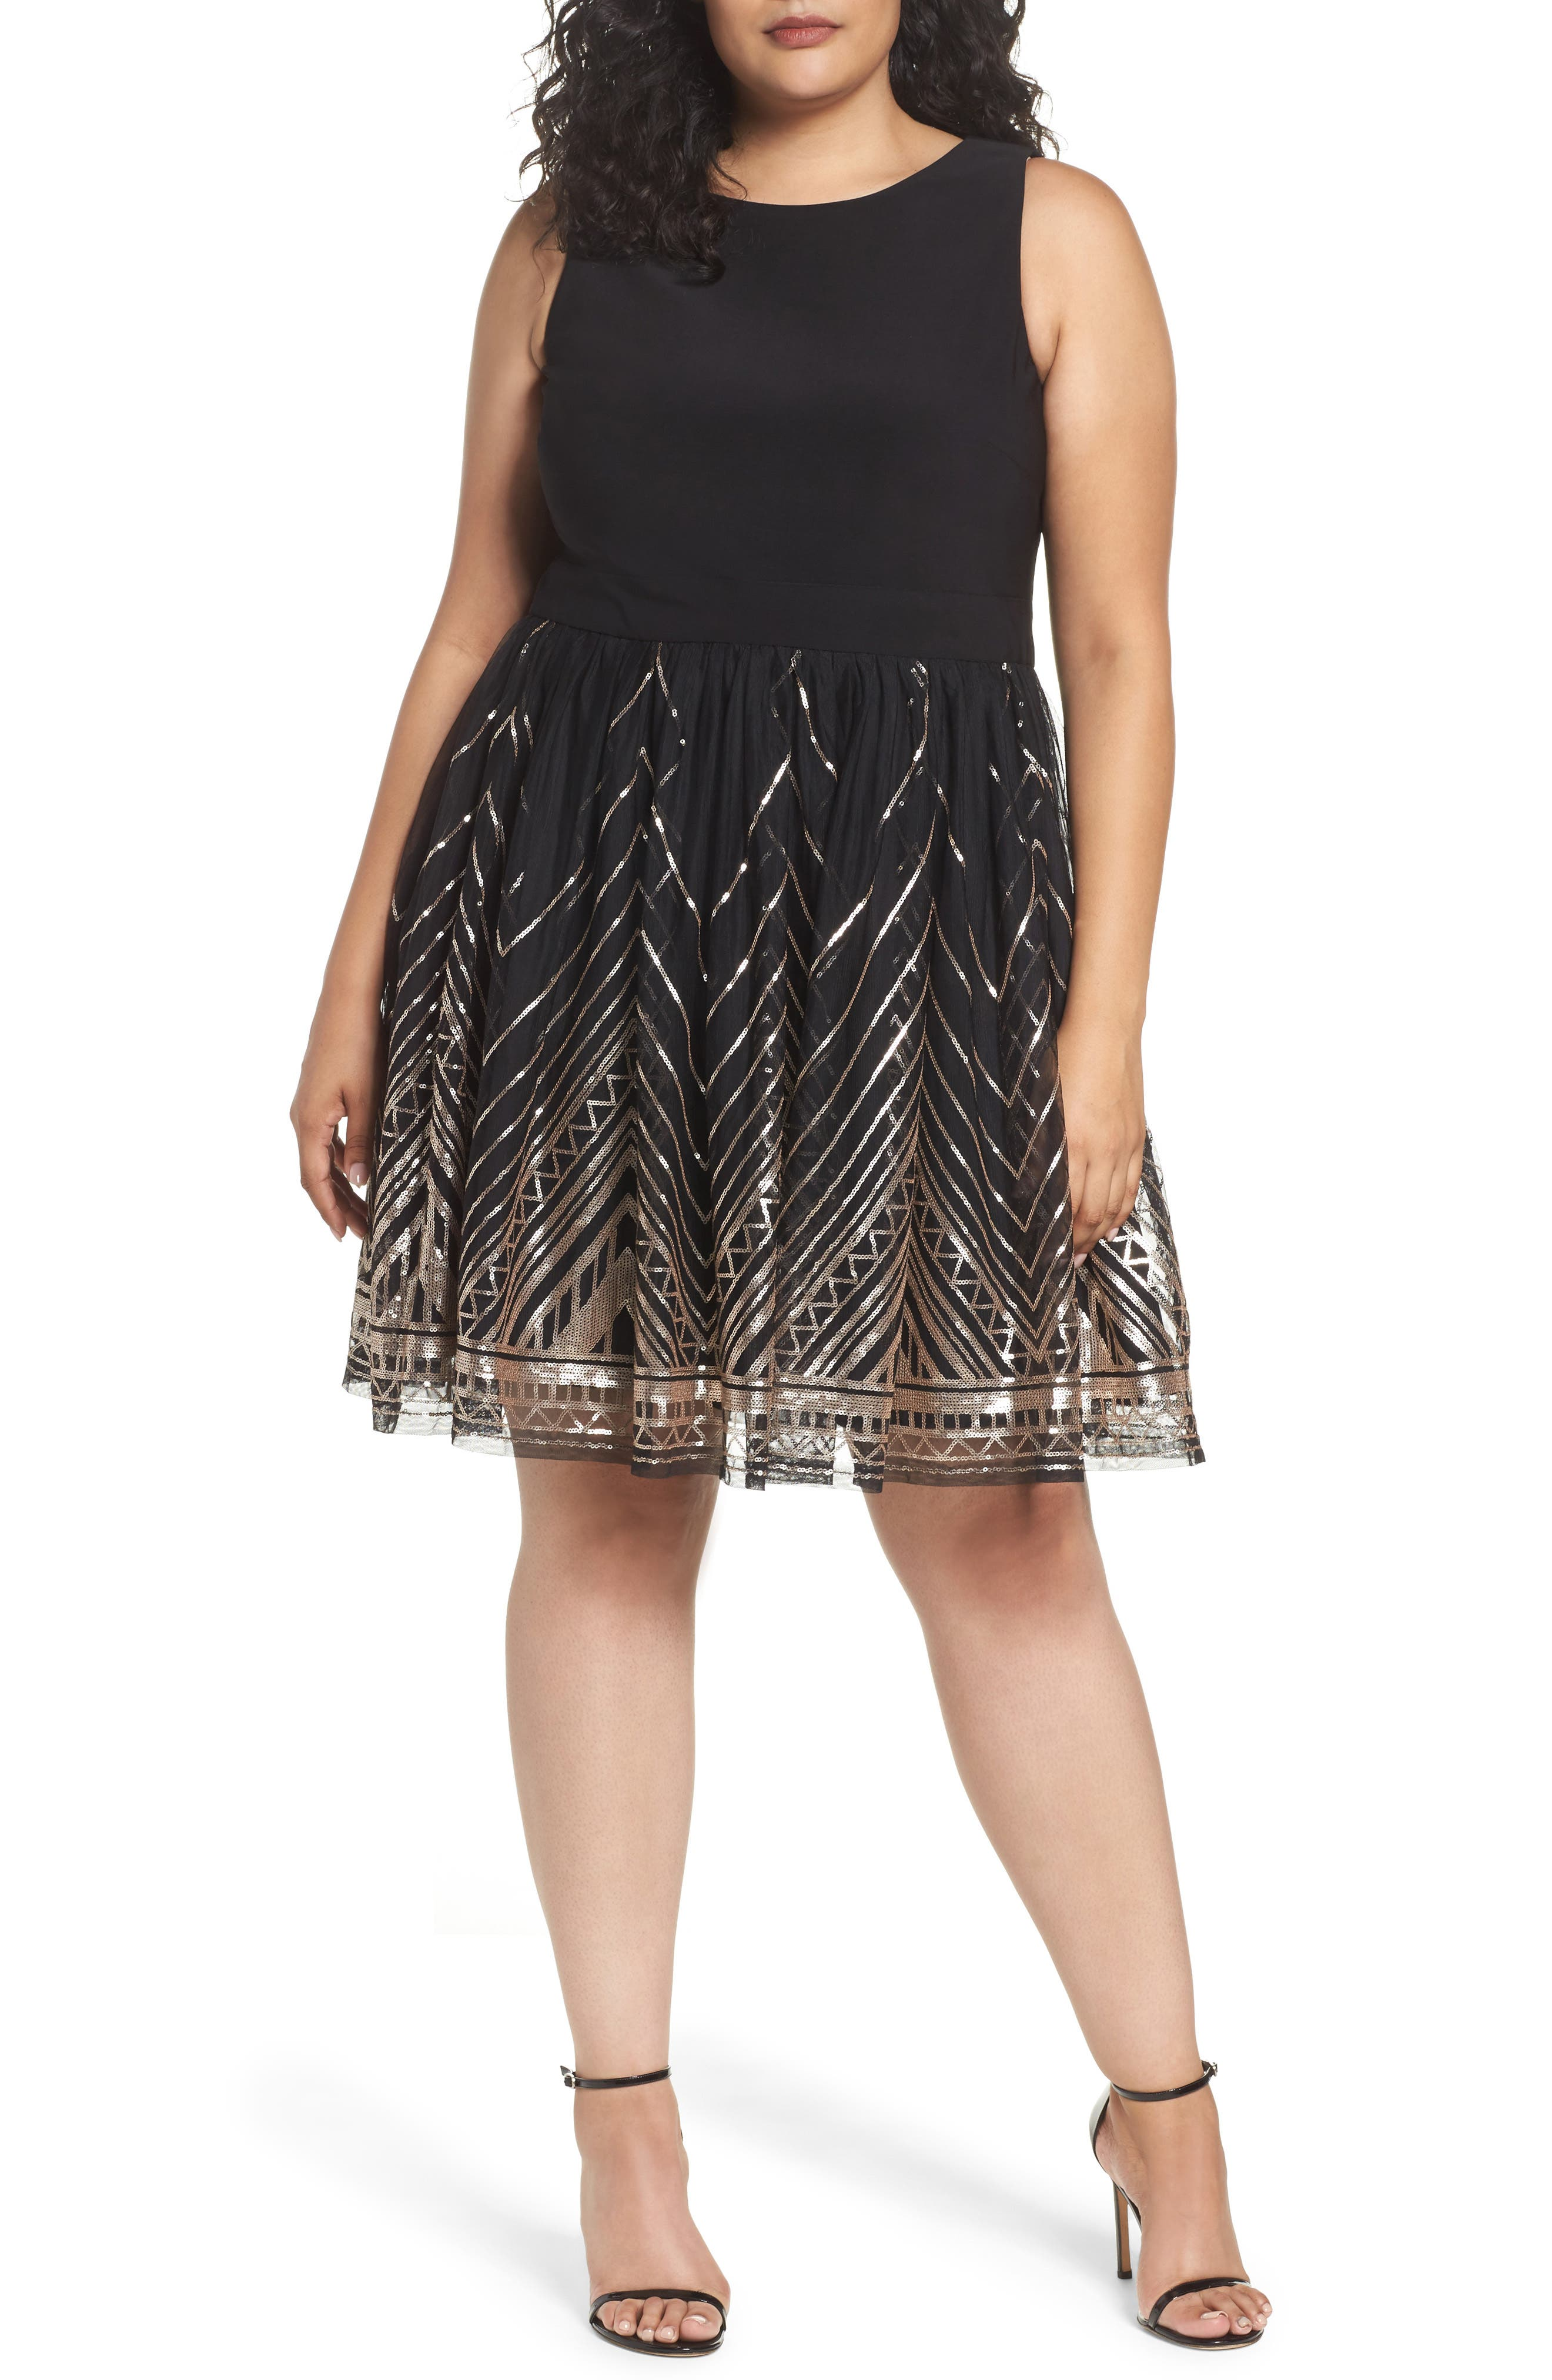 Alternate Image 1 Selected - Vince Camuto Sequin Fit & Flare Dress (Plus Size)